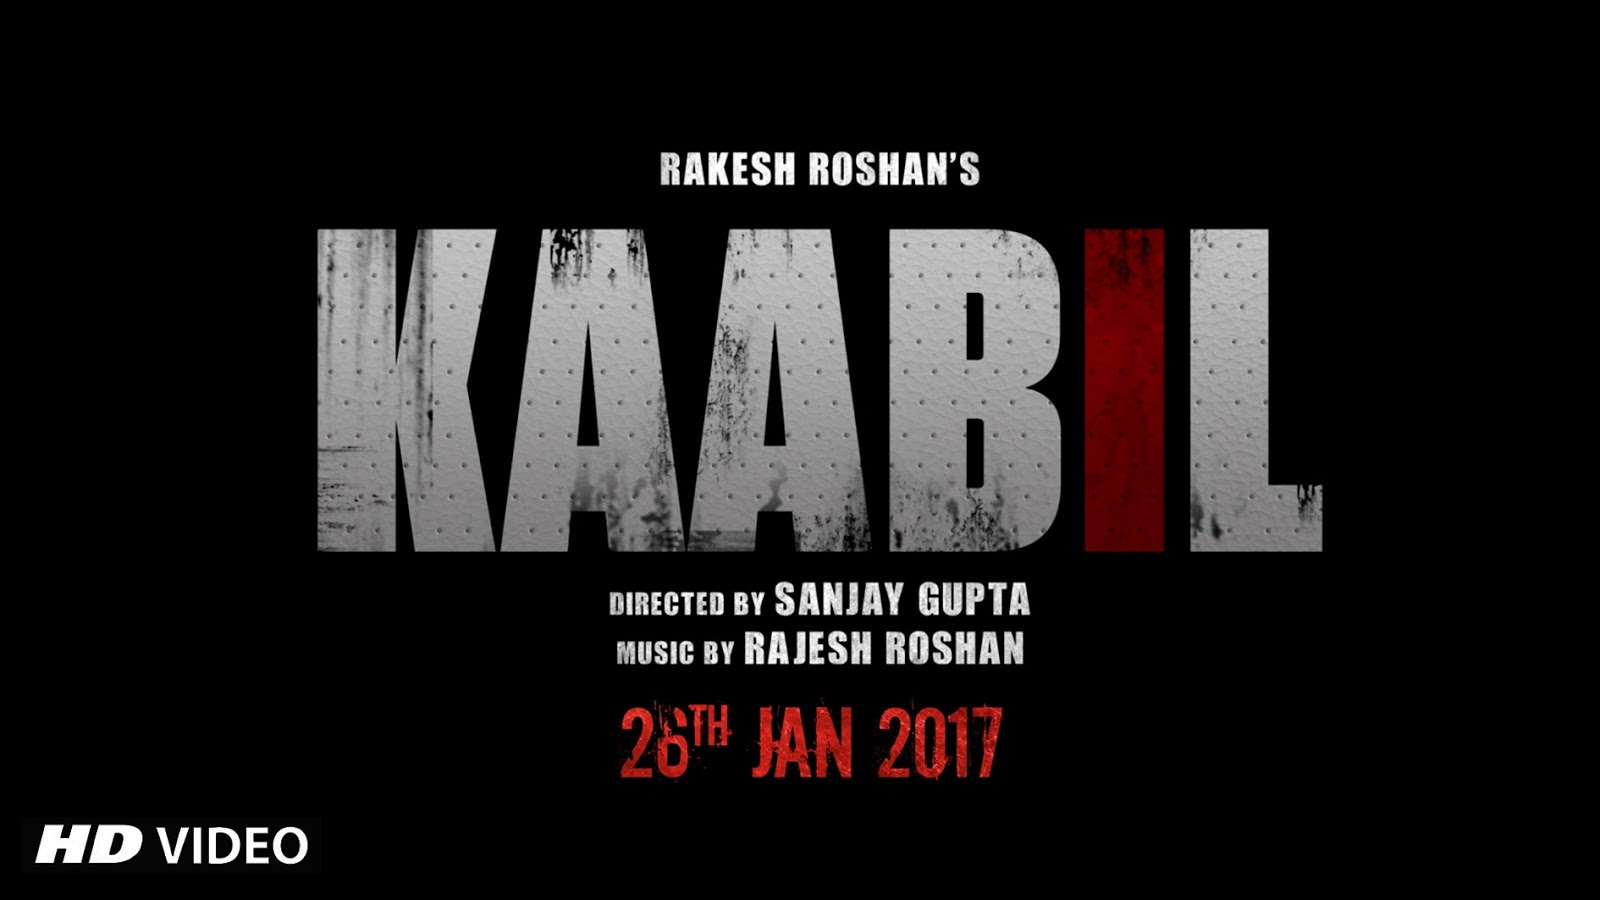 Complete cast and crew of Kaabil   (2016) bollywood hindi movie wiki, poster, Trailer, music list - Hrithik Roshan and Yami Gautam, Movie release date 25 January, 2016